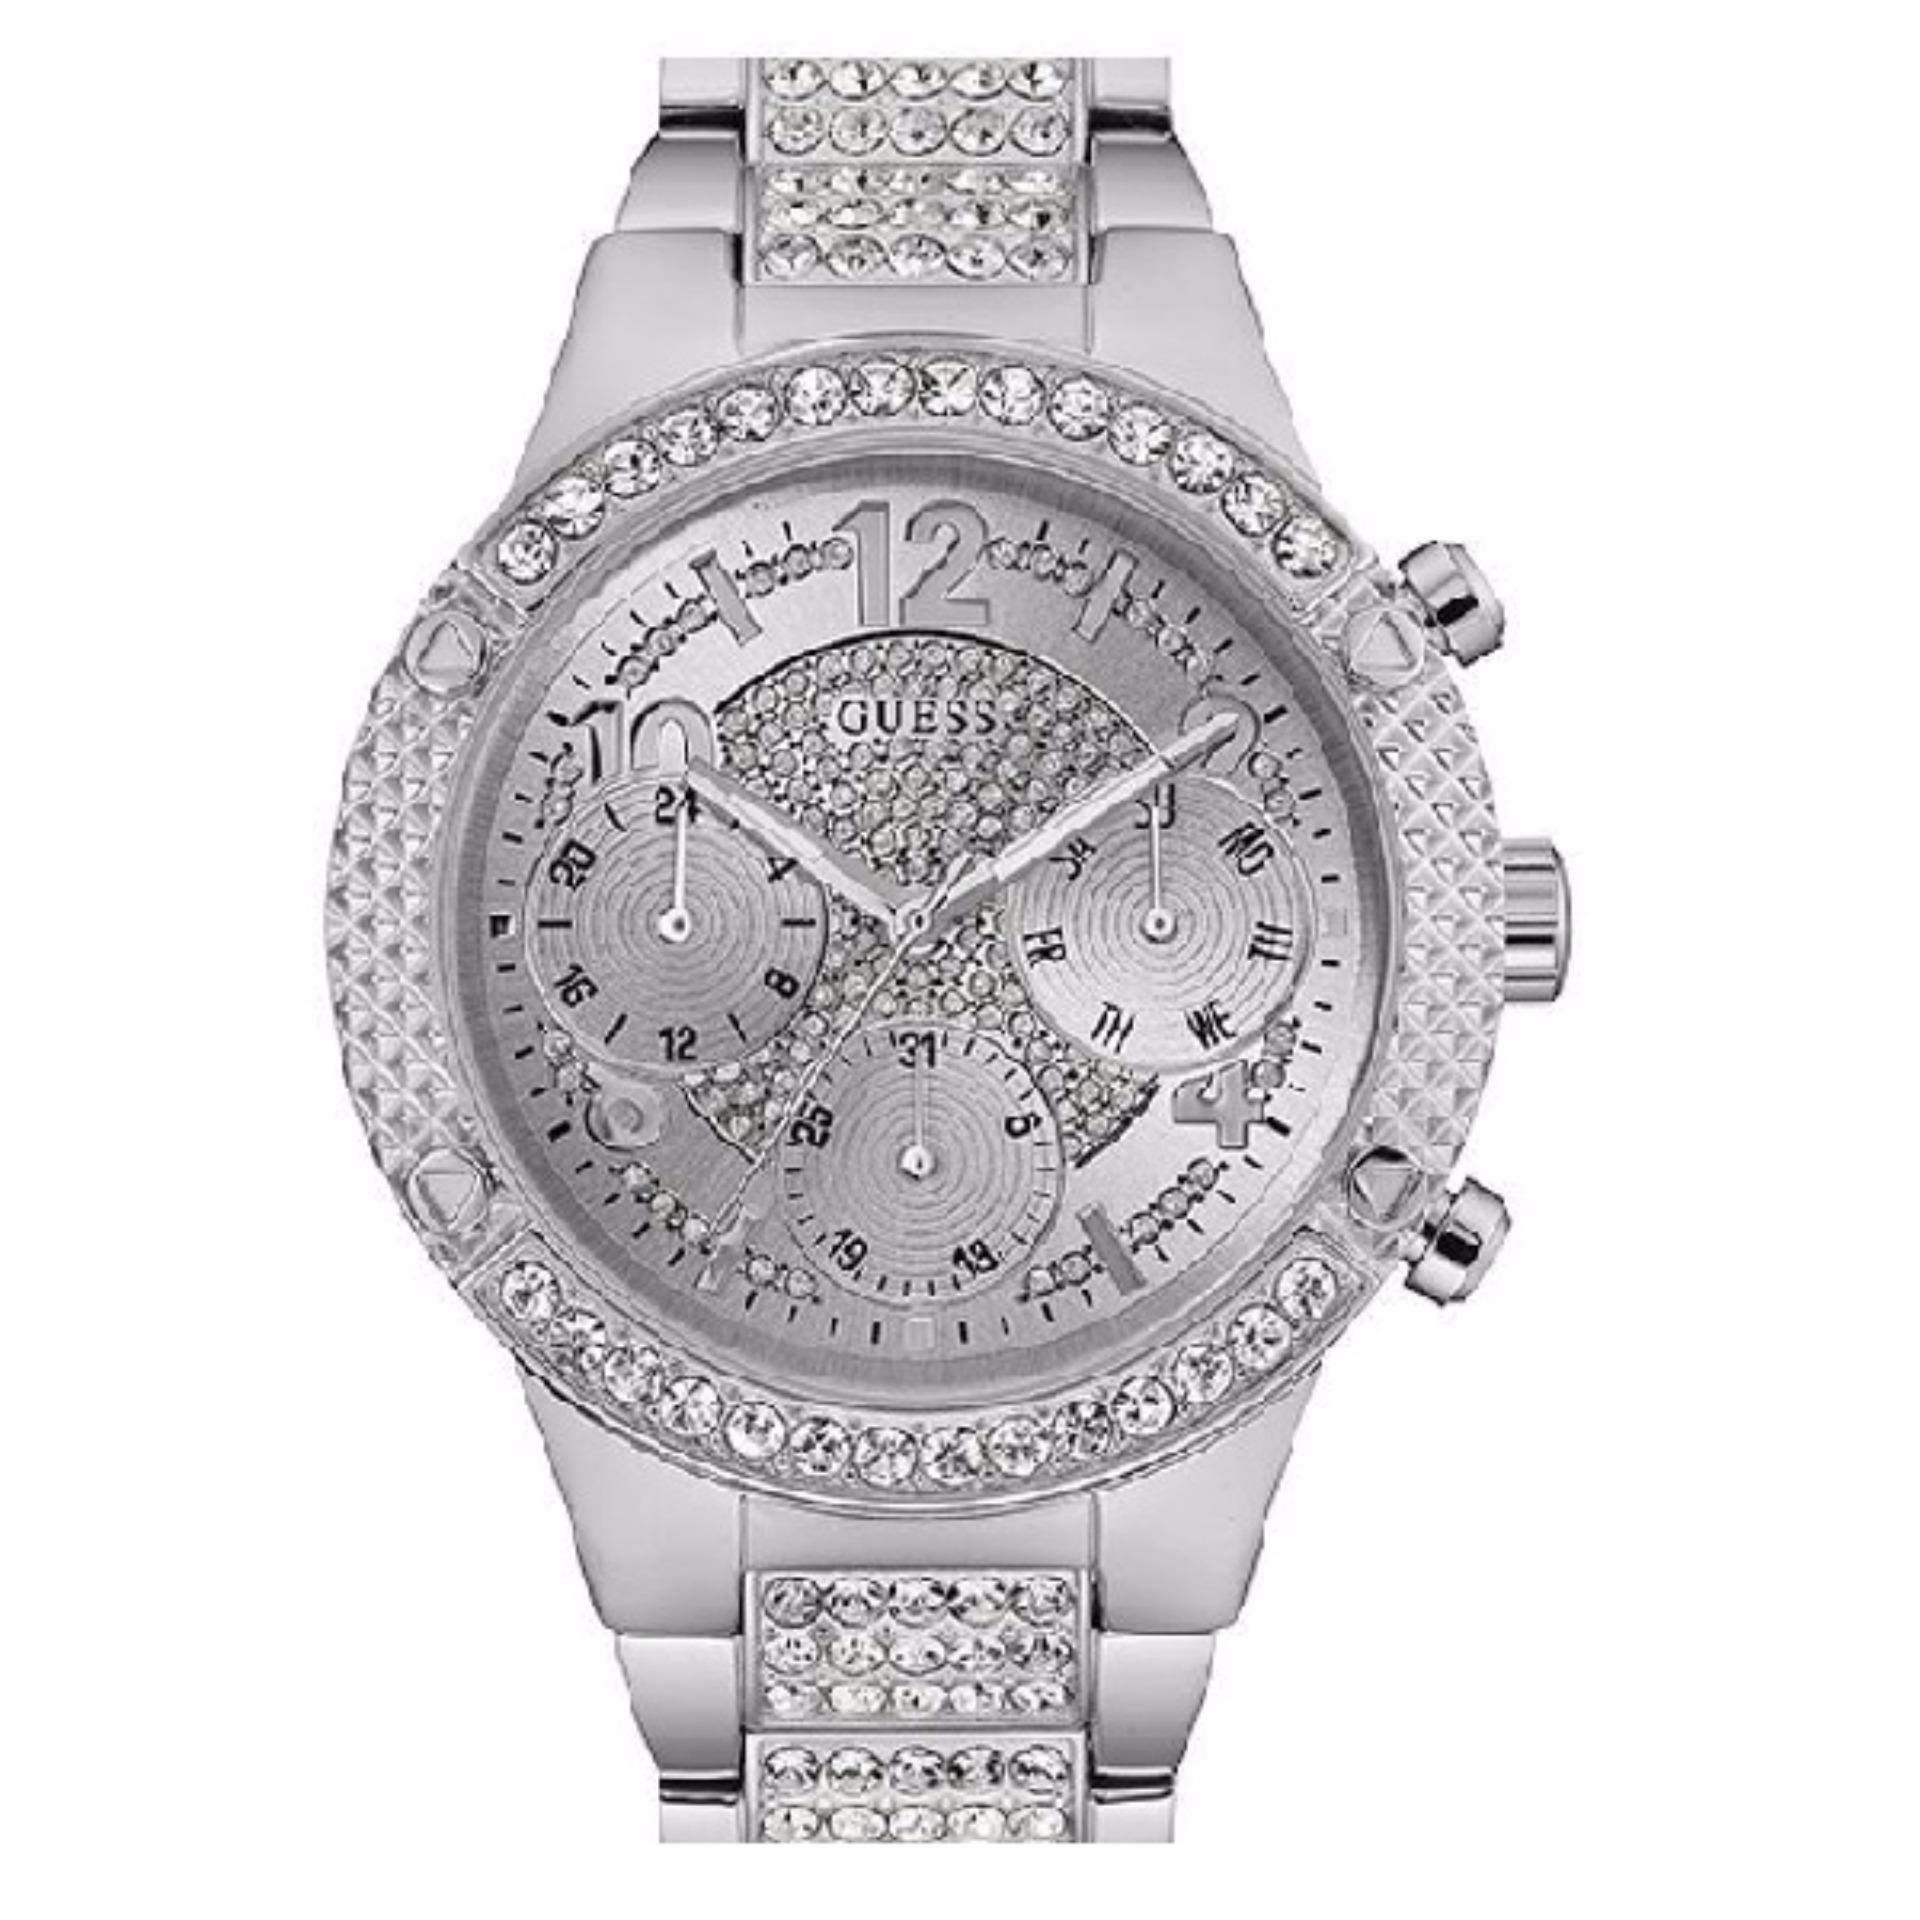 Guess Collection Gc Ladychic Y06002l1 Jam Tangan Wanita Stainless Rosegold Steel Y05009m7 Multifunction Strap Silver W0850l1